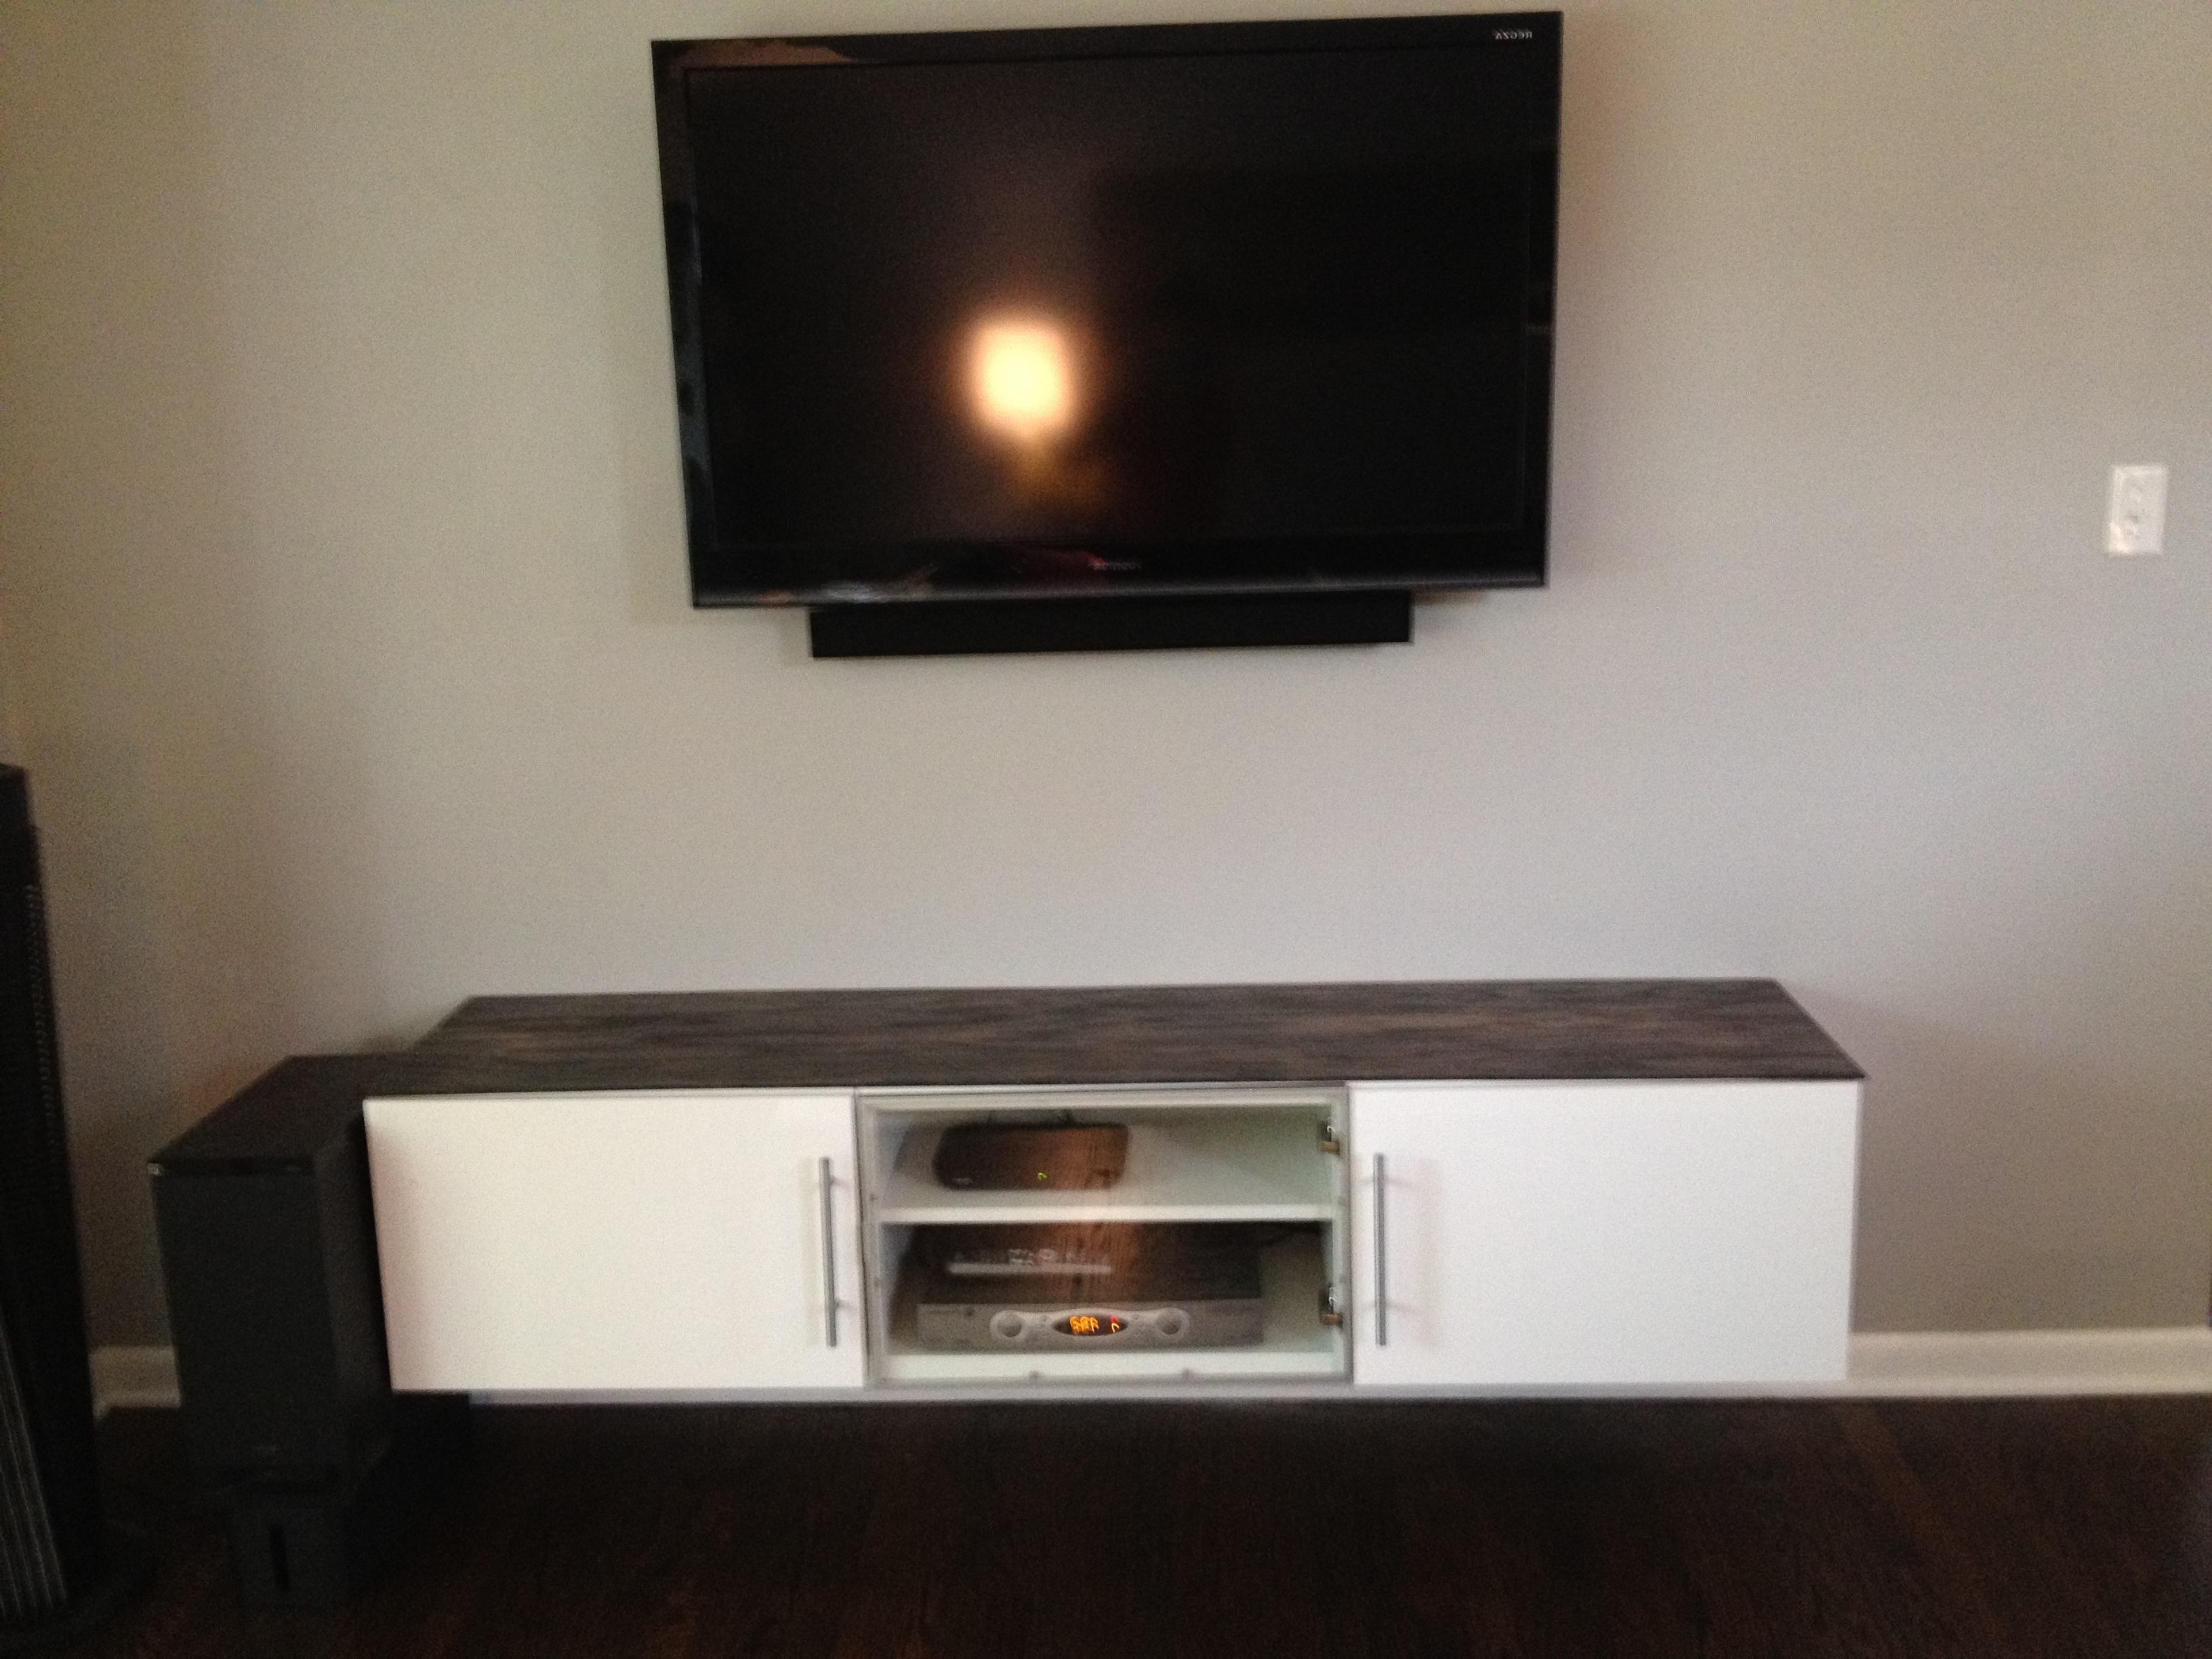 Best And Newest Wall Stand Ikea Or Mounting Besta Cabinets With Base Plus Kitchen Within Ikea Wall Mounted Tv Cabinets (View 3 of 20)